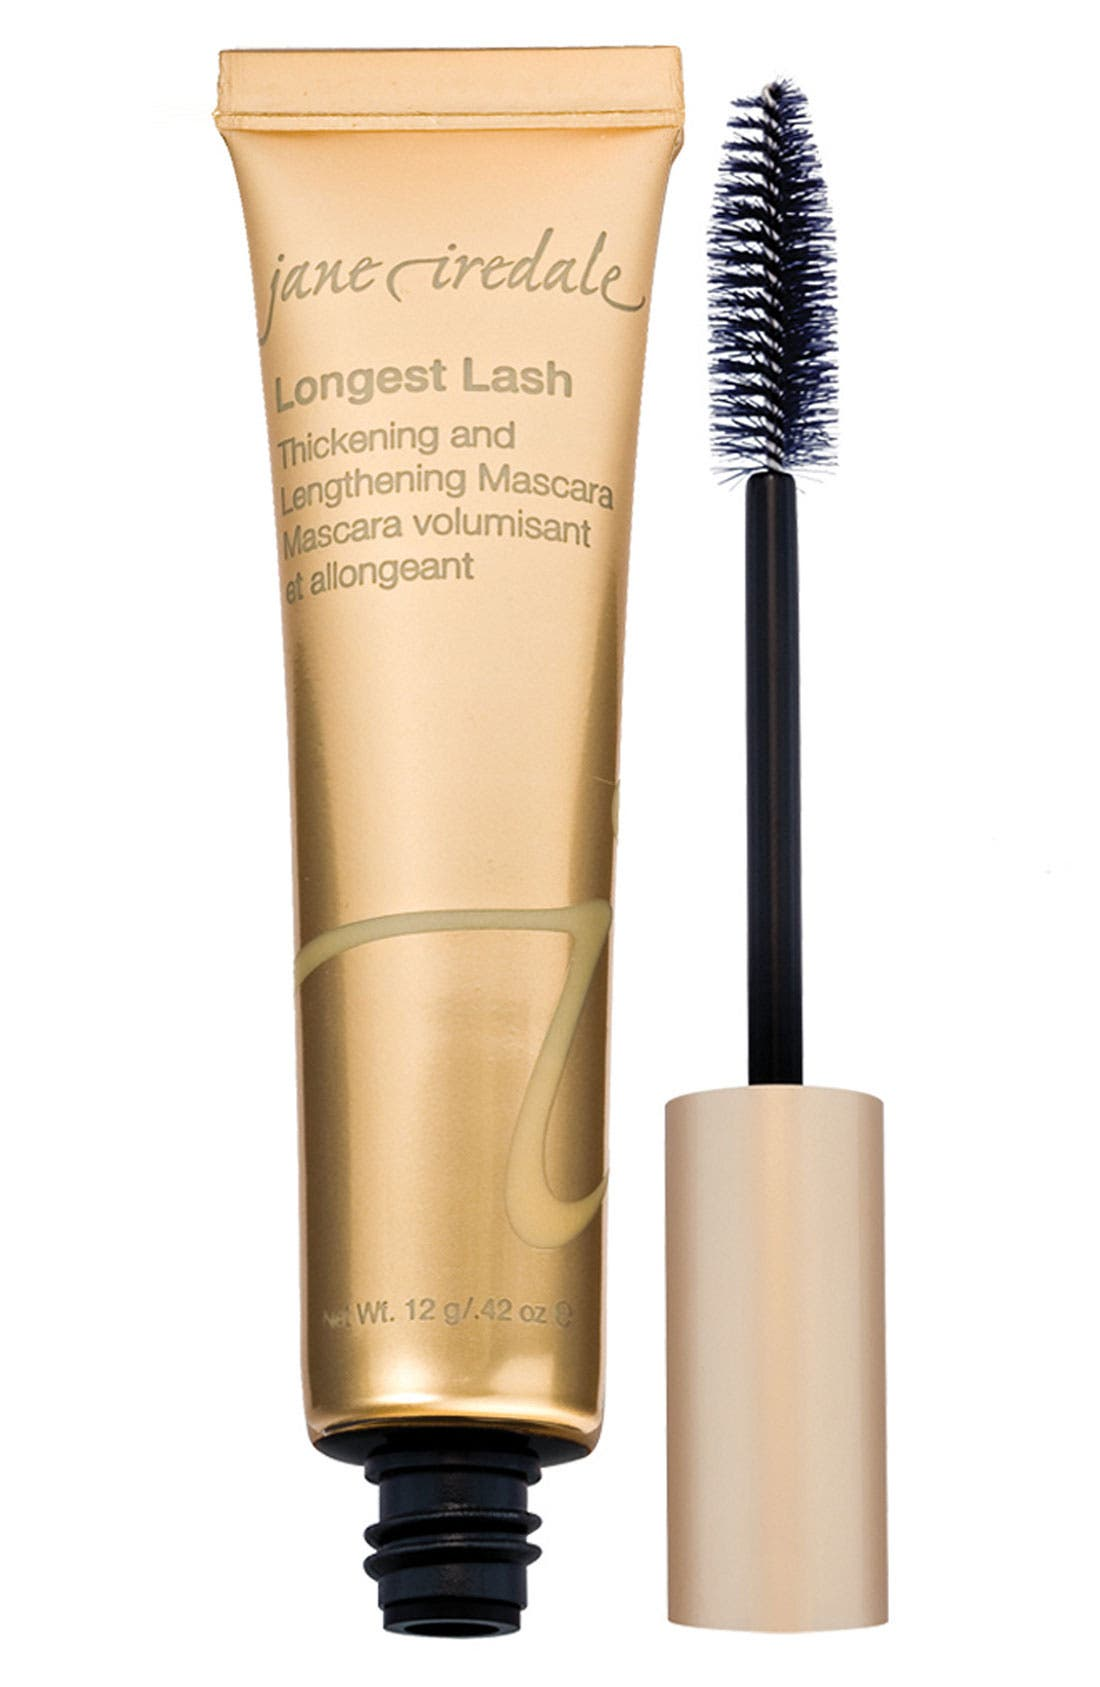 jane iredale Longest Lash Thickening & Lengthening Mascara